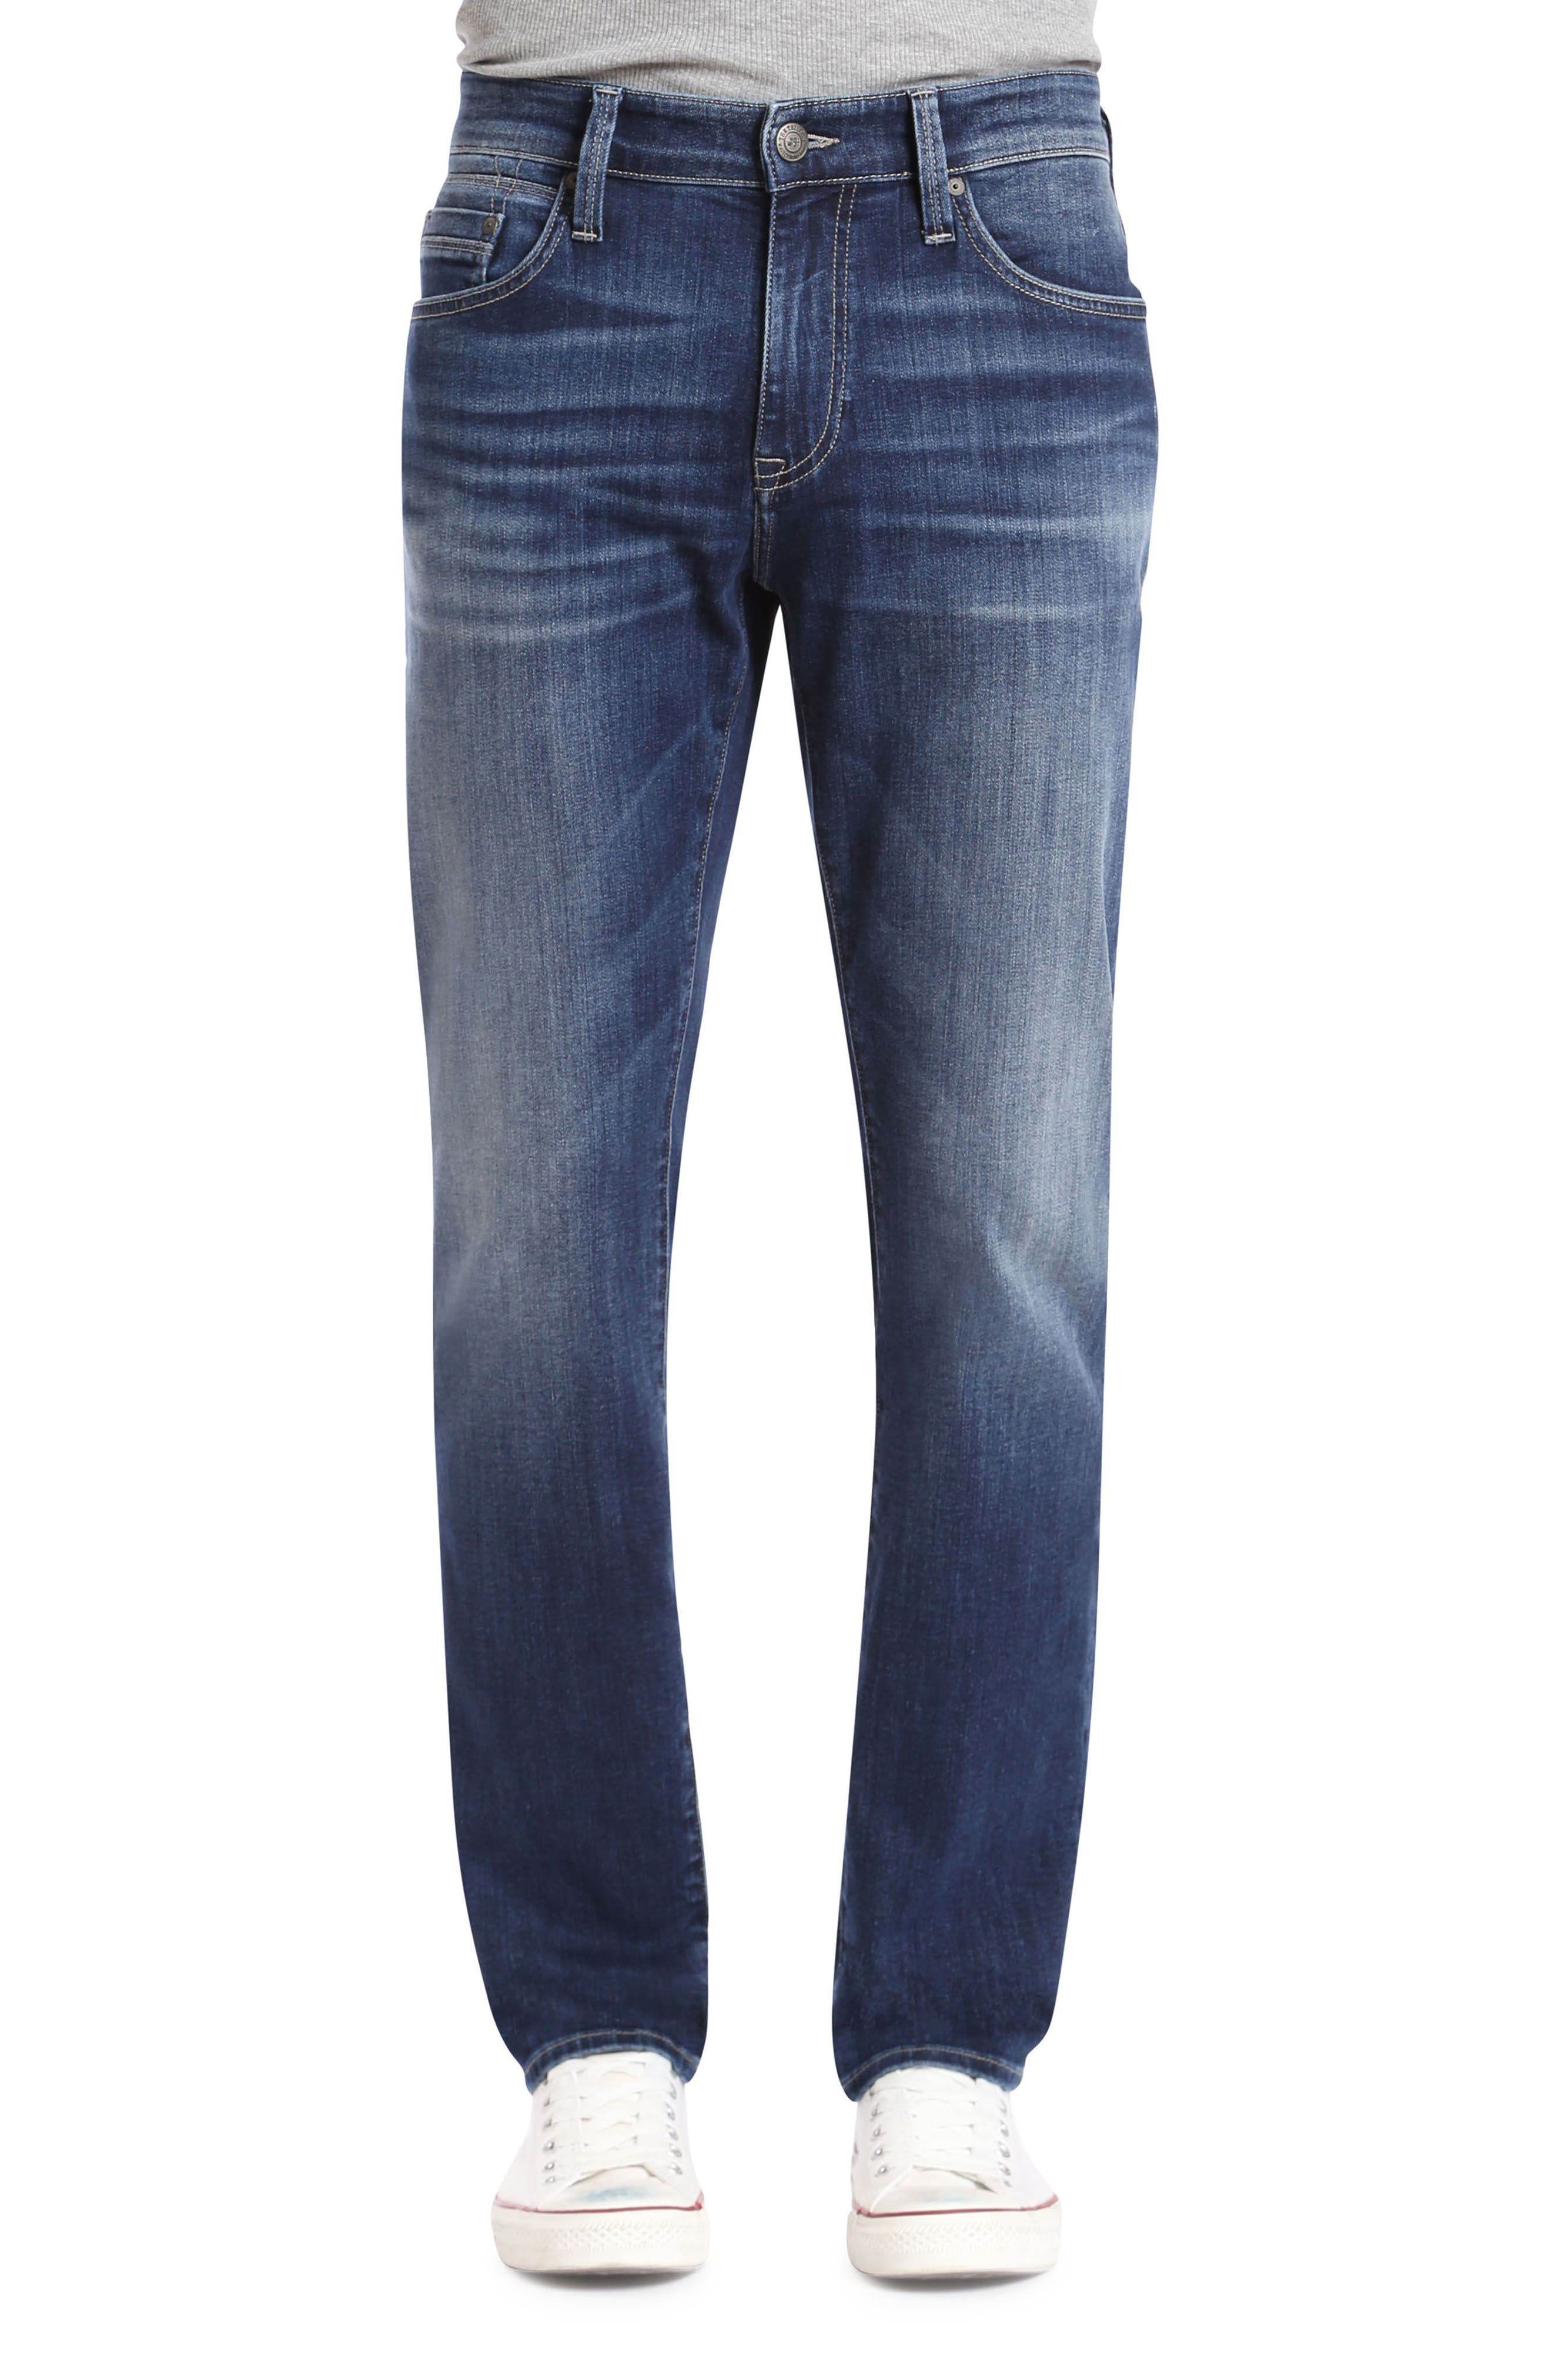 Marcus Slim Straight Leg Jeans,                             Main thumbnail 1, color,                             Dark Blue Williamsburg